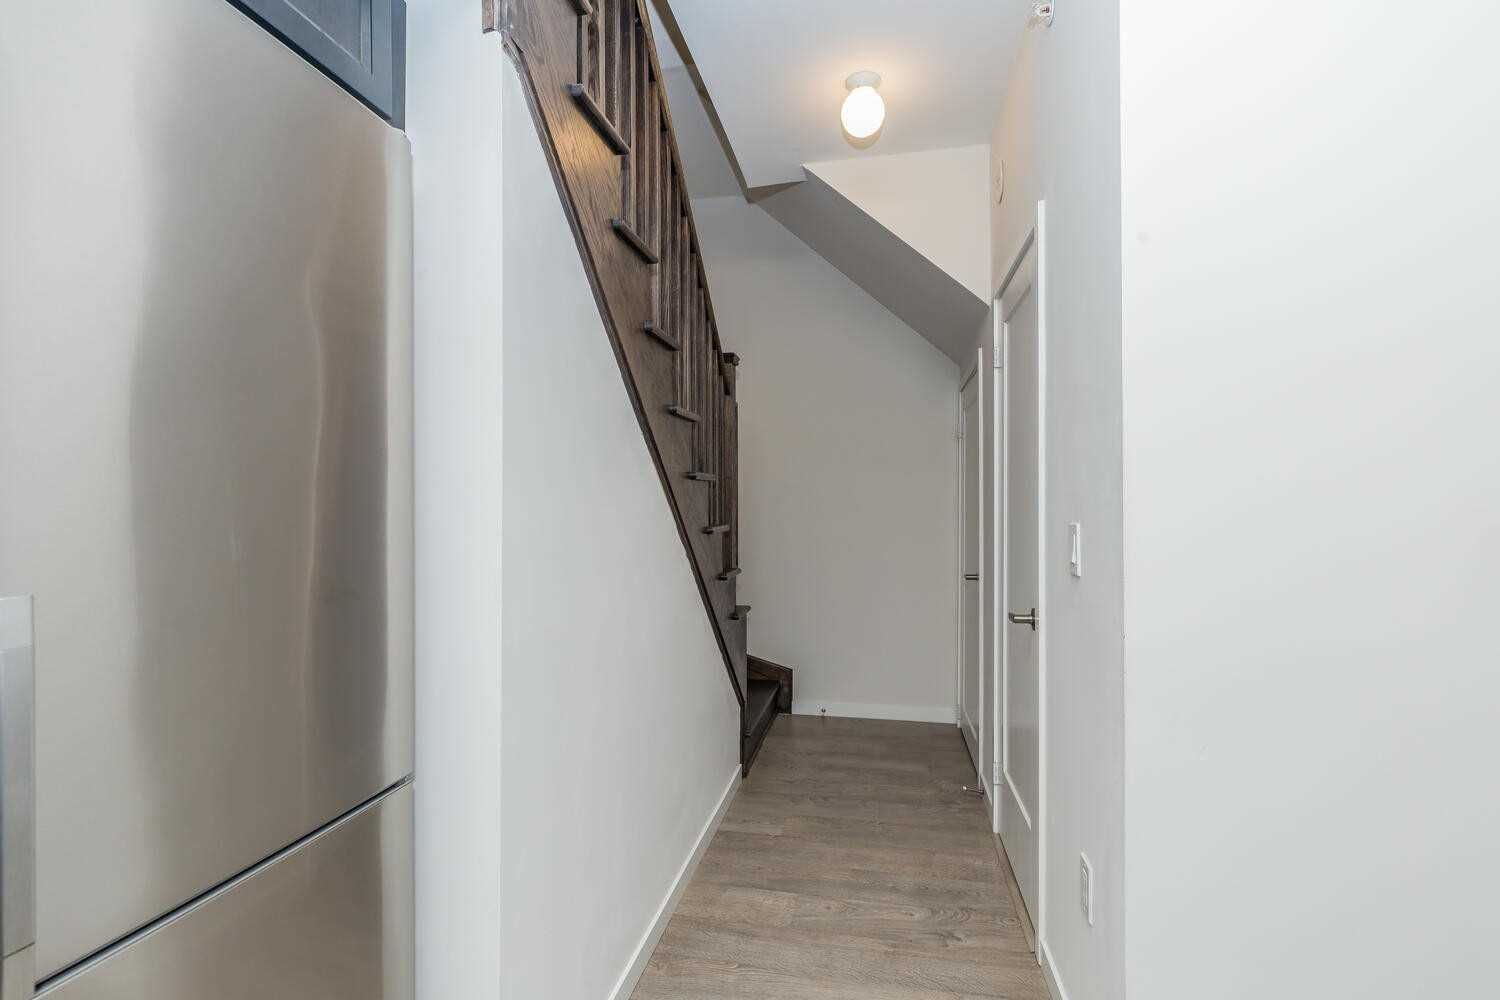 Image 15 of 17 showing inside of 2 Bedroom Condo Townhouse 2-Storey for Sale at 1711 Pure Springs Blvd Unit# 410, Pickering L1X0E3